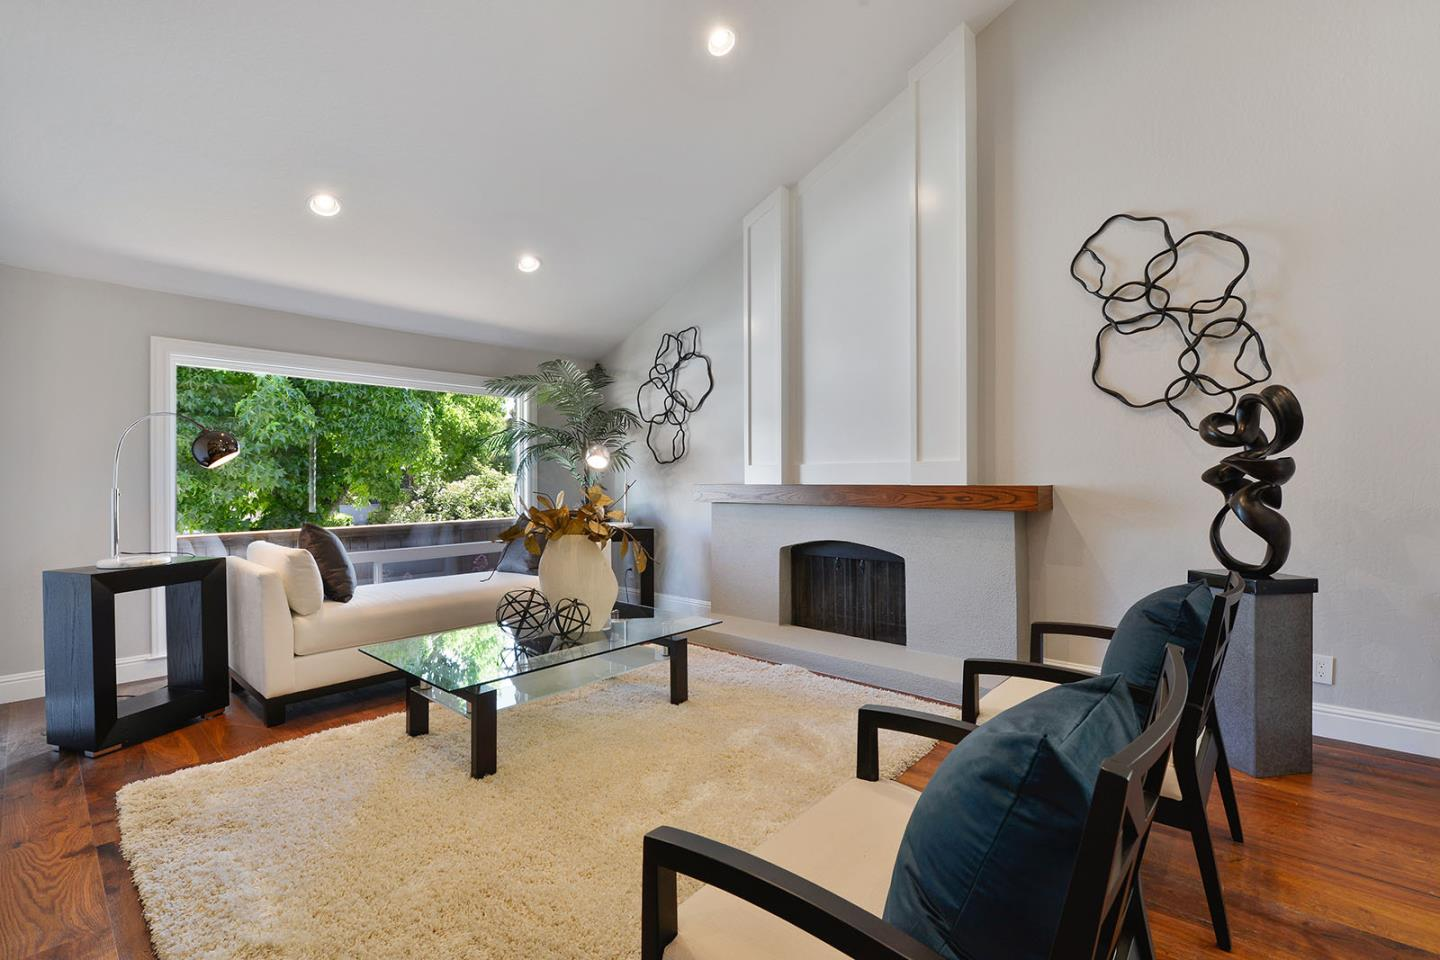 Additional photo for property listing at 1561 Cherrywood Drive  San Mateo, カリフォルニア 94403 アメリカ合衆国